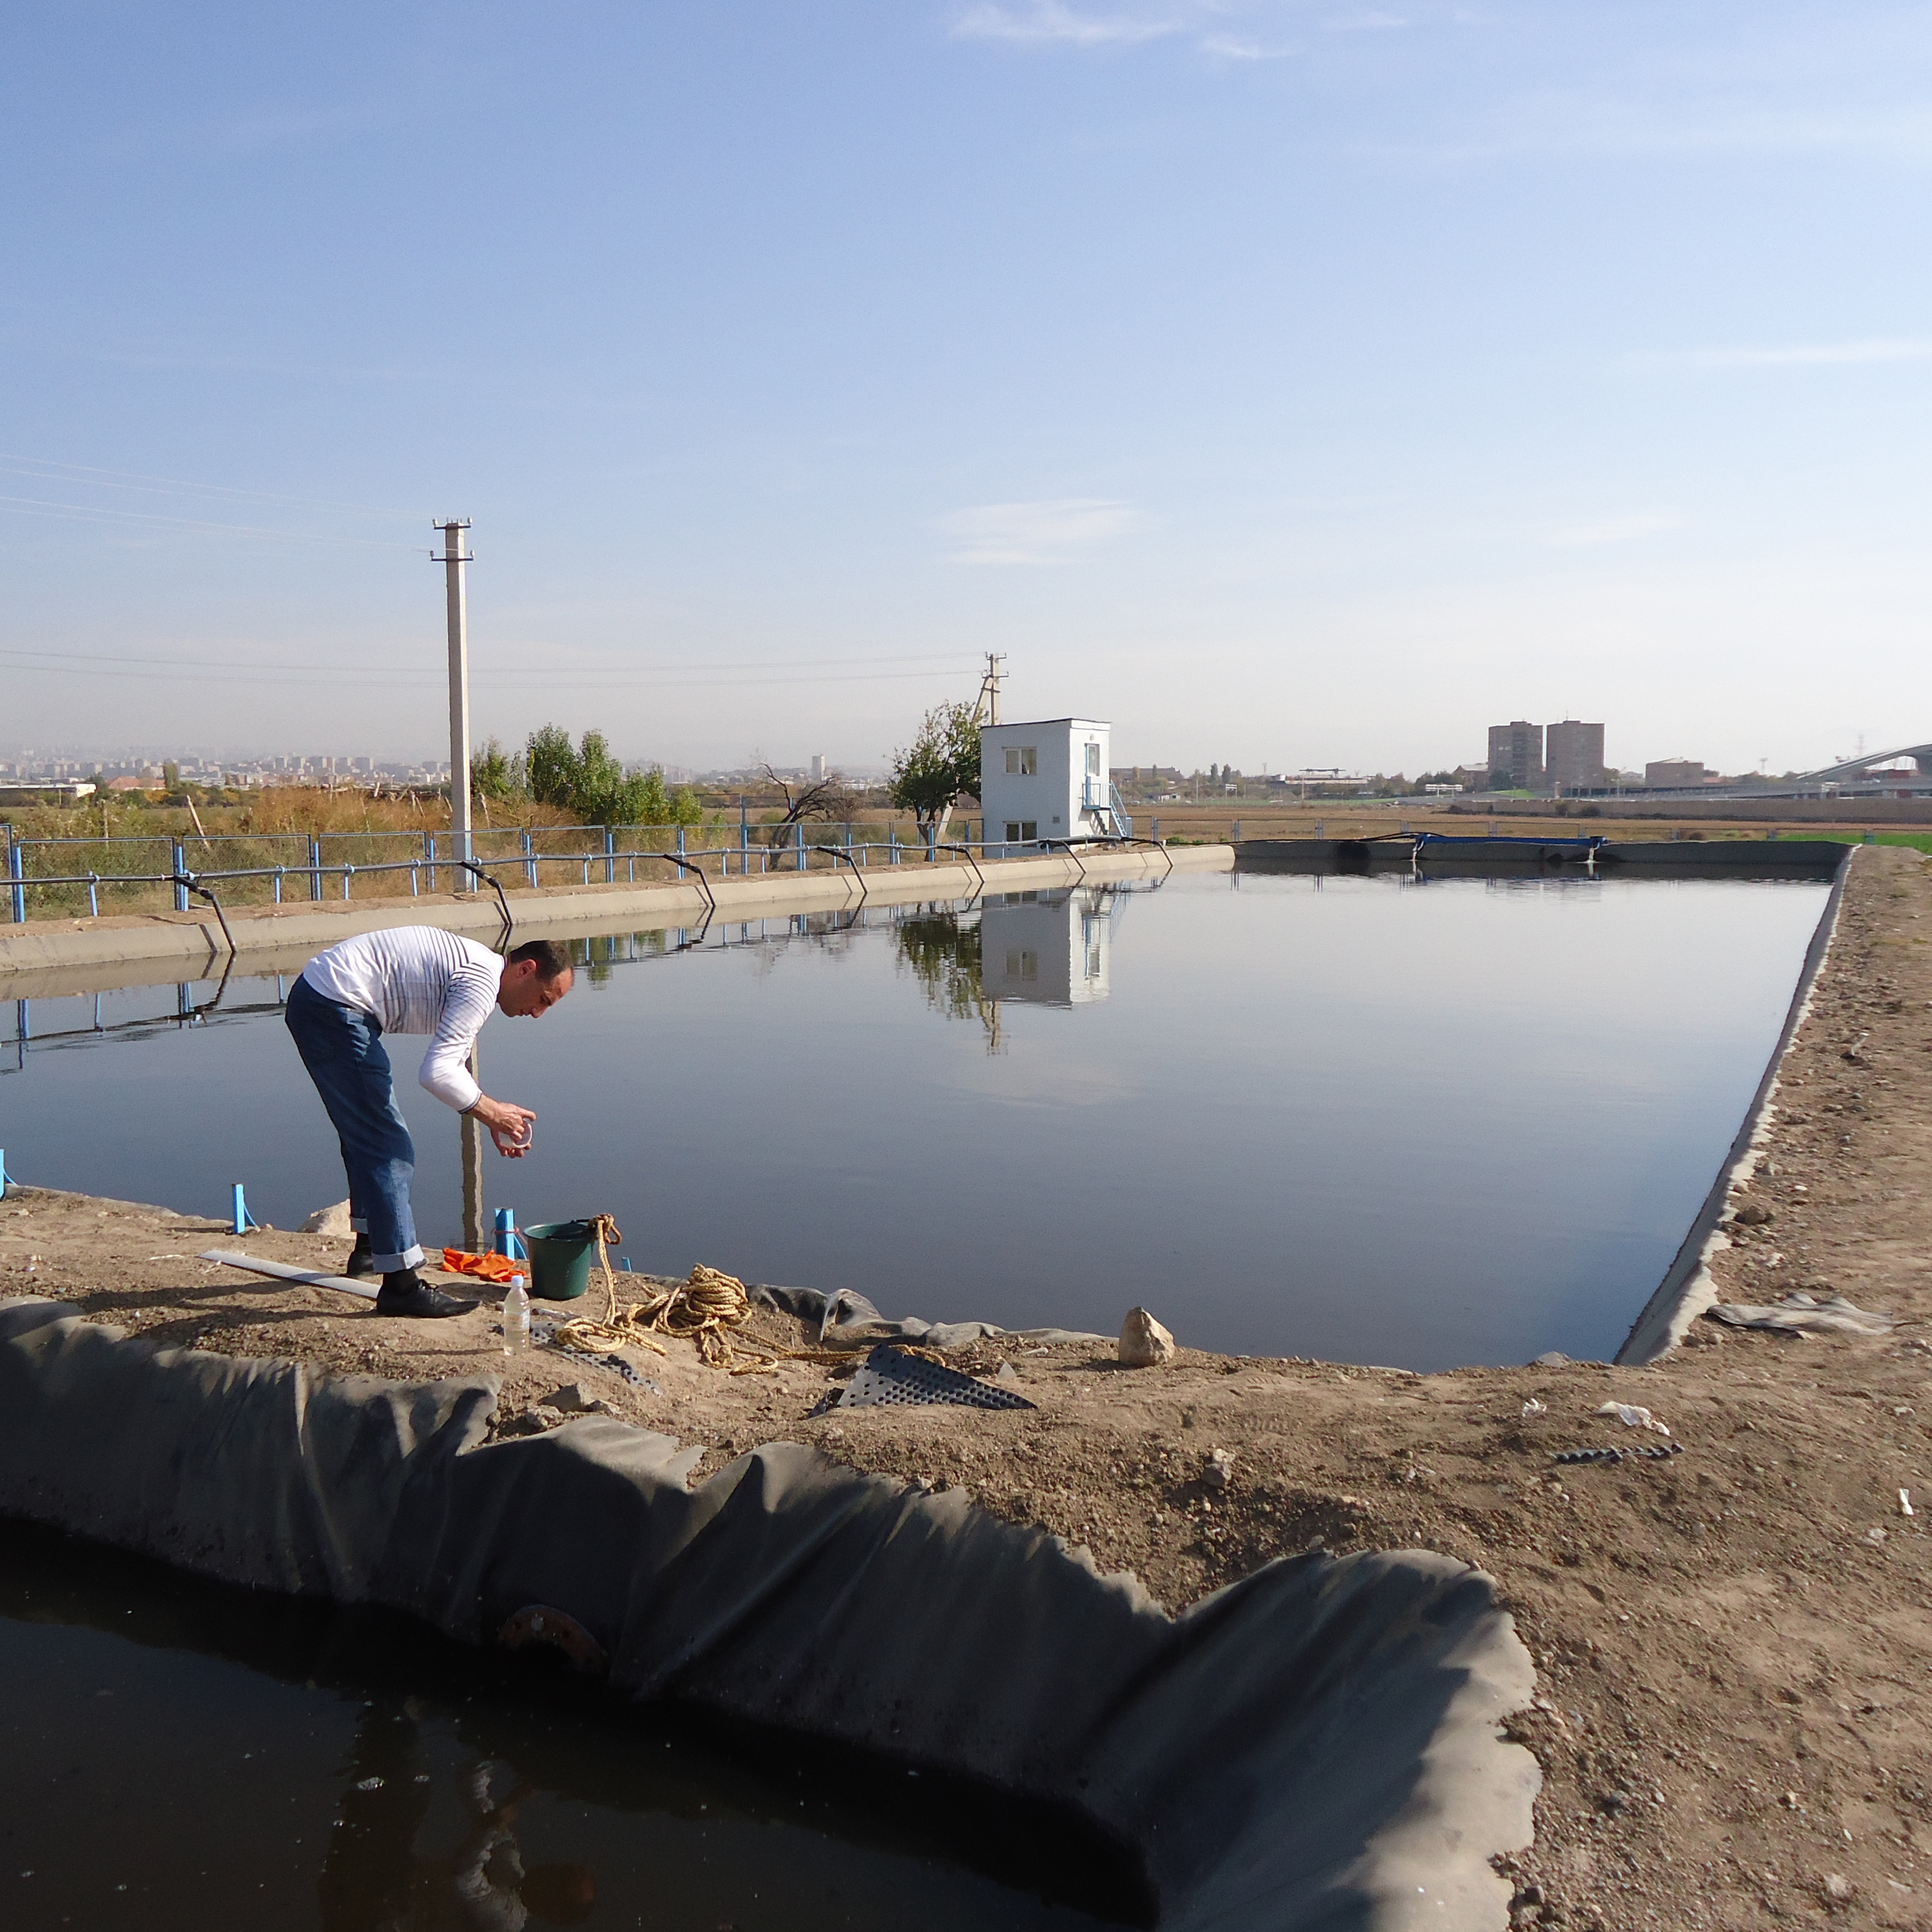 Rehabilitation of agricultural lands though application of biological ponds for domestic wastewater treatment in Parakar community of Armavir region